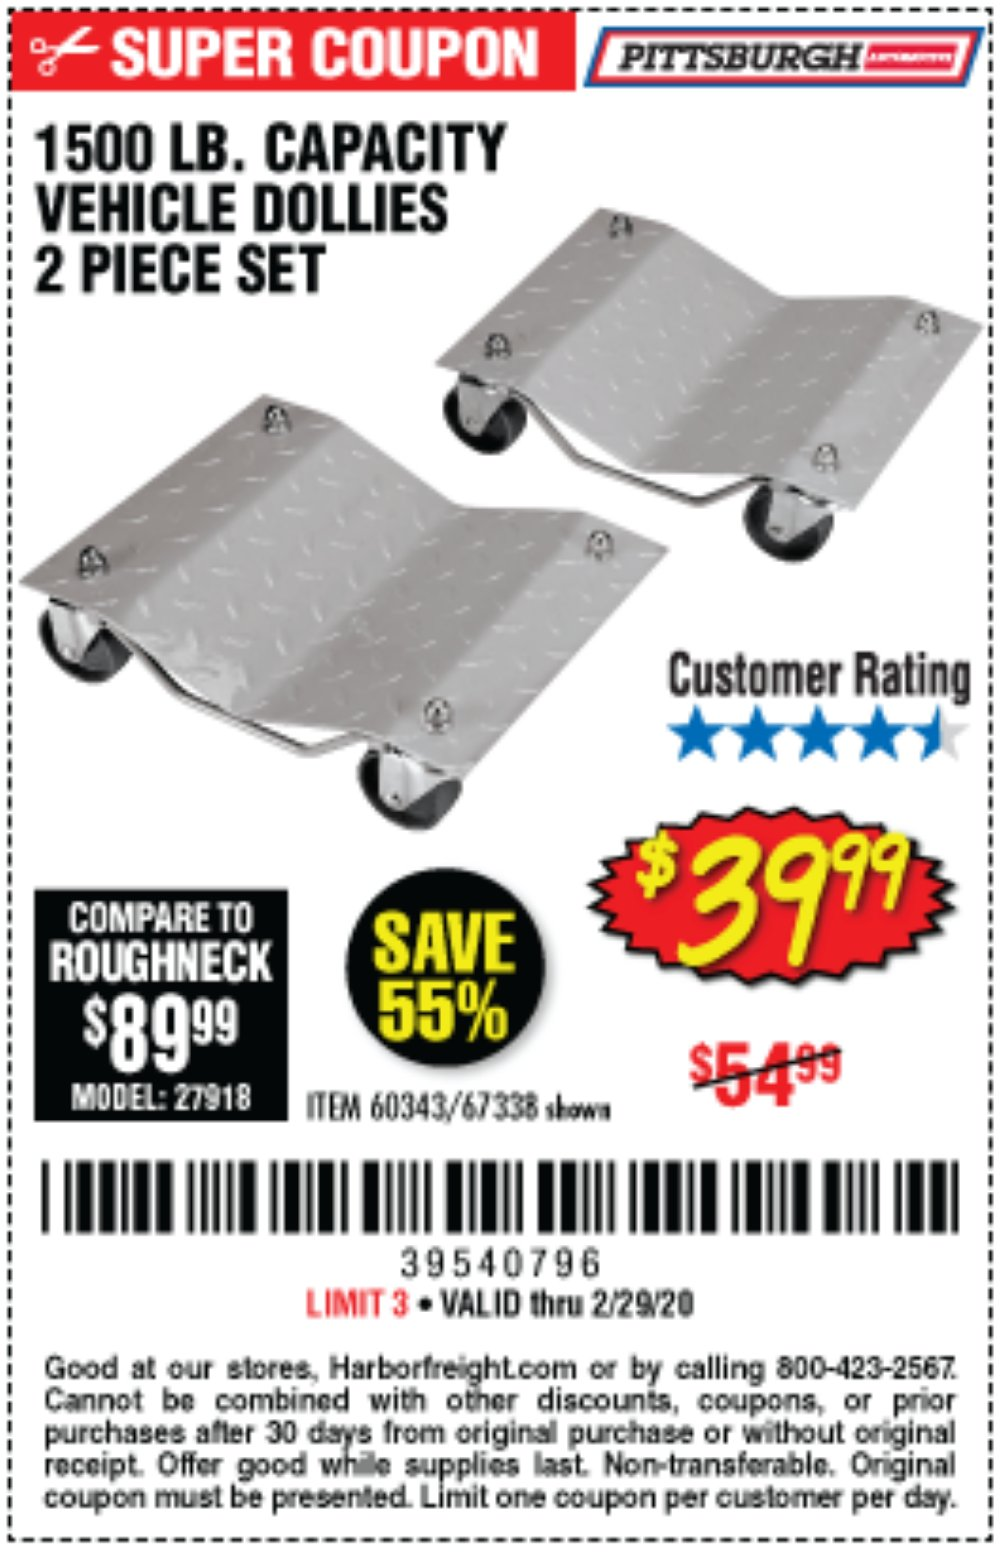 Harbor Freight Coupon, HF Coupons - 2 Piece 1500 Lb. Capacity Vehicle Wheel Dollies